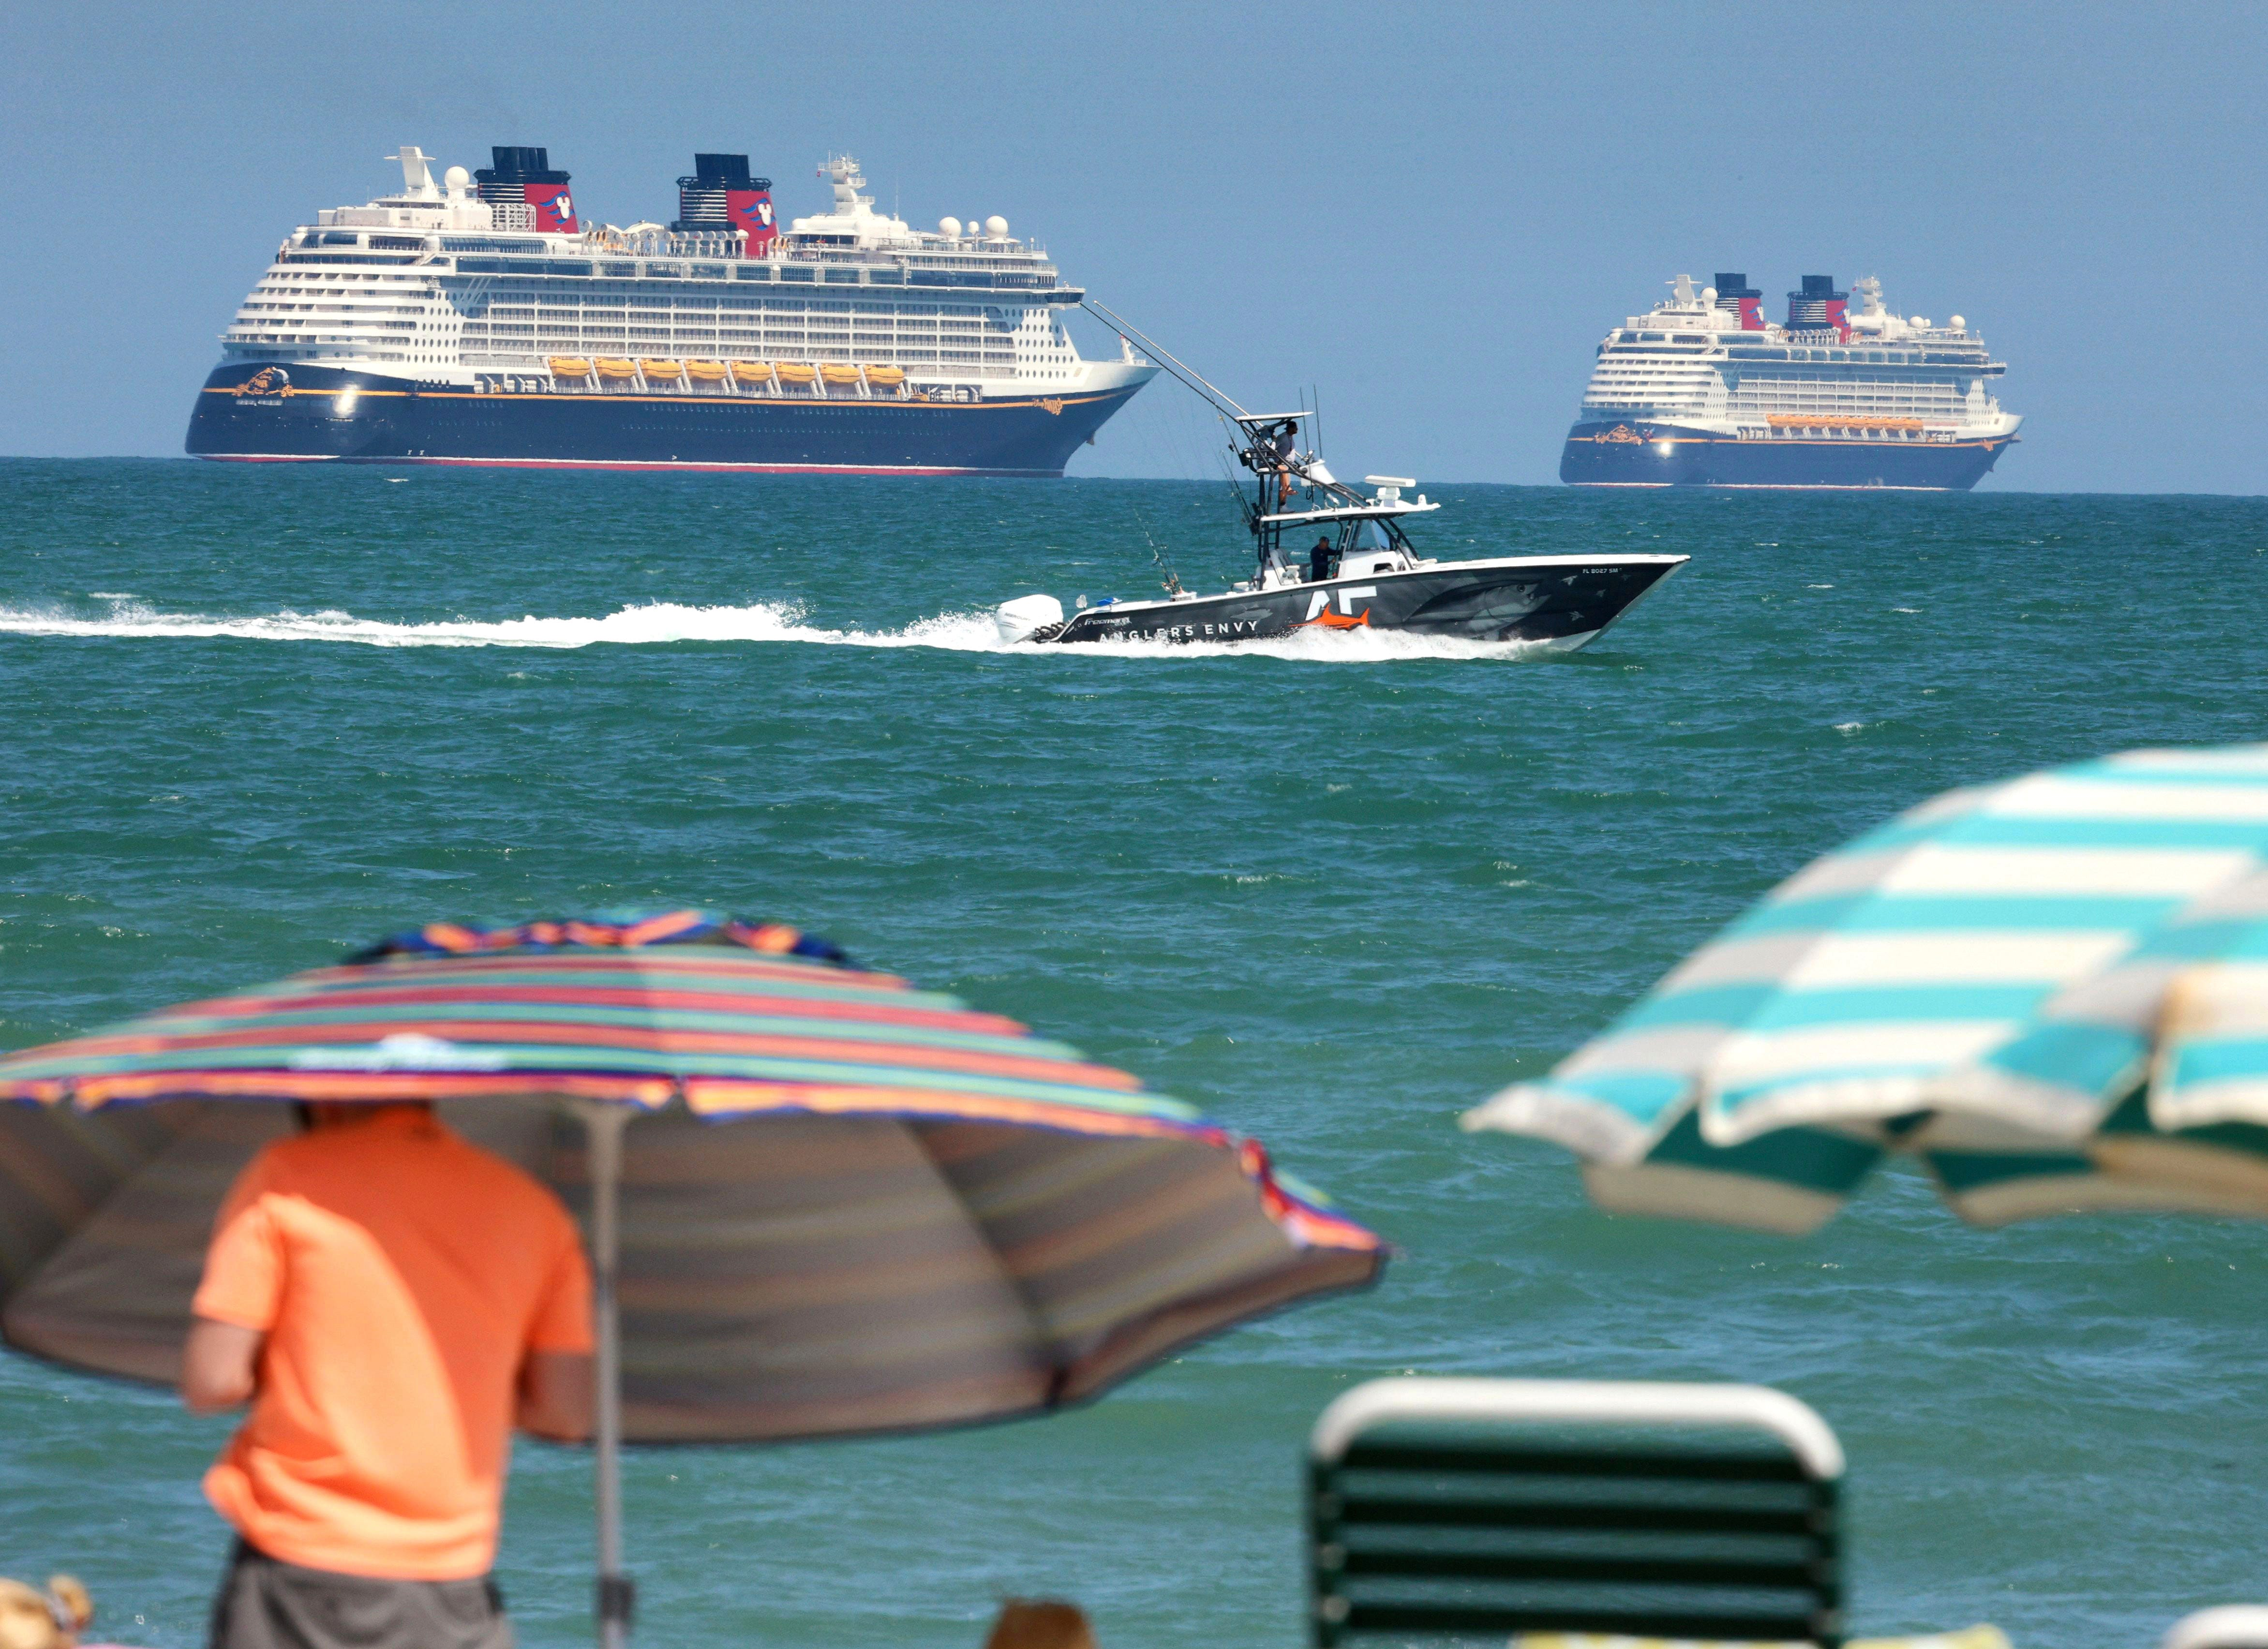 US Travel Association calls for CDC to lift restrictions on cruise industry, allow sailing to resume